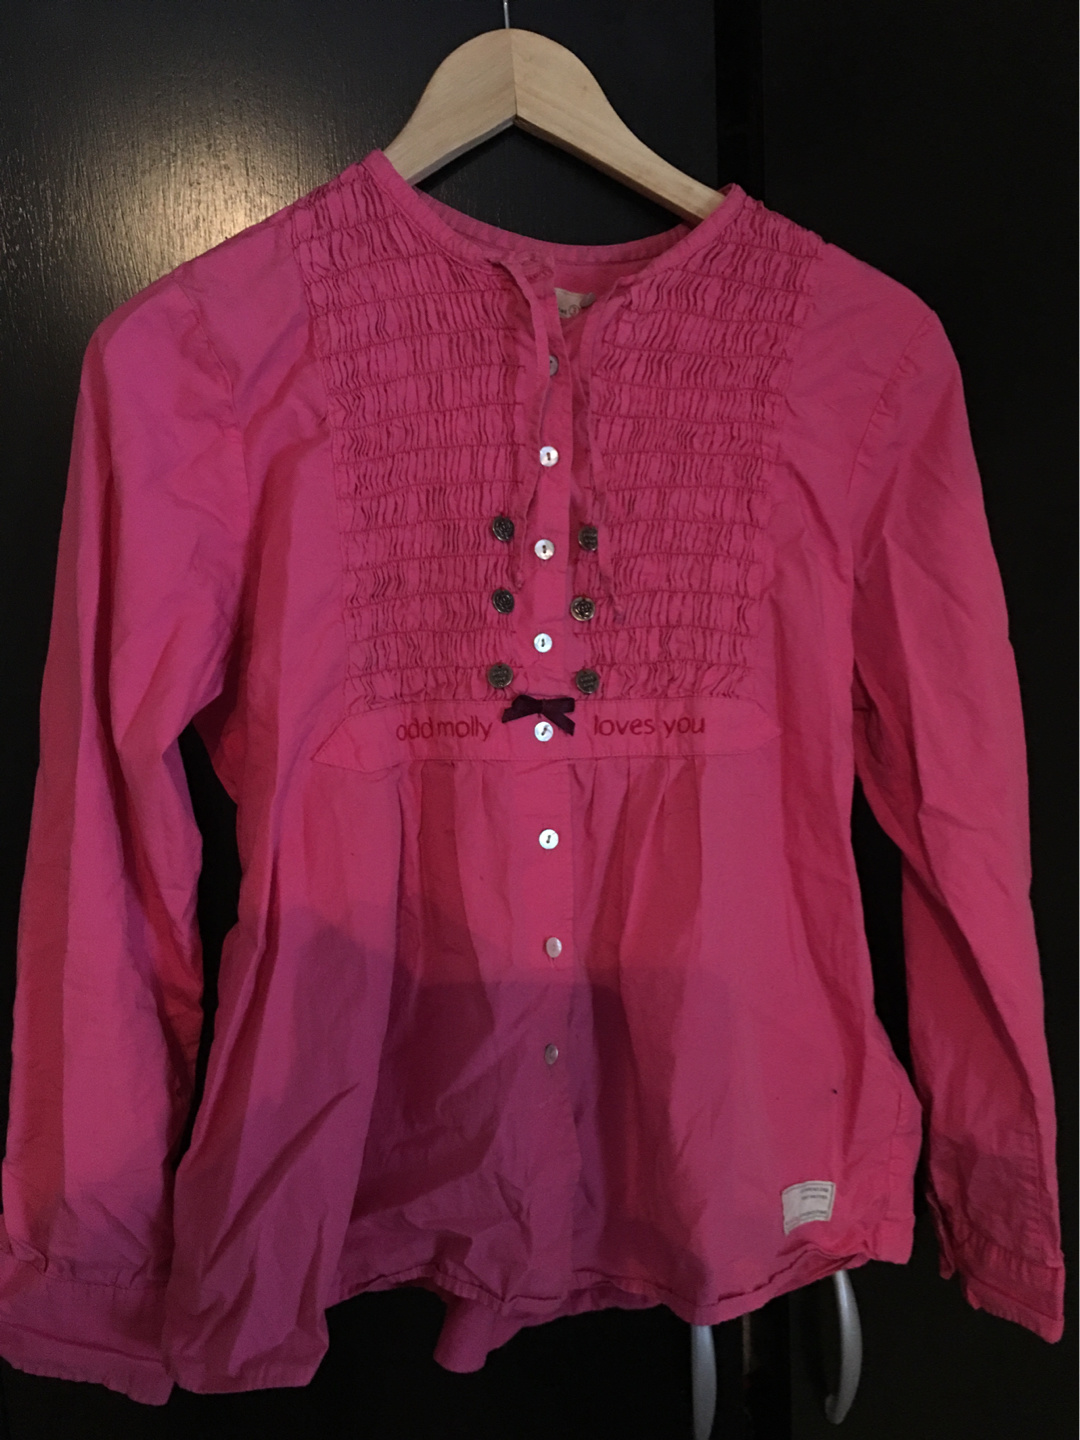 Women's blouses & shirts - ODD MOLLY photo 1